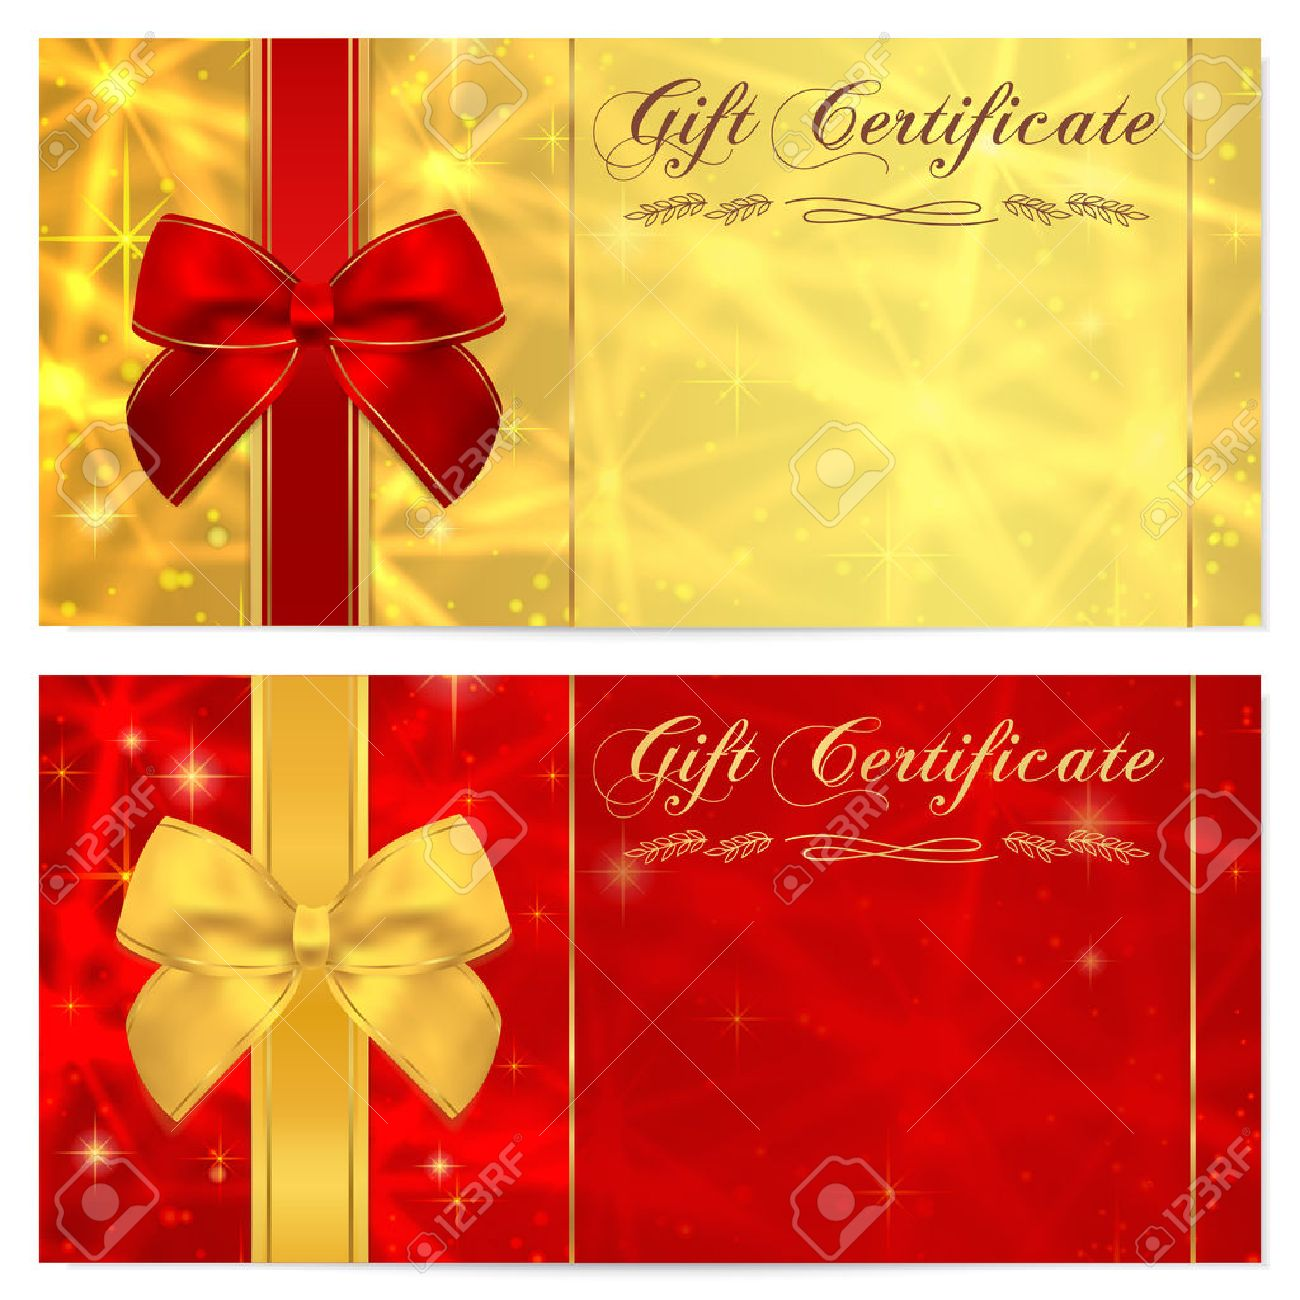 Gift Certificate, Voucher, Coupon, Invitation Or Gift Card Template ...